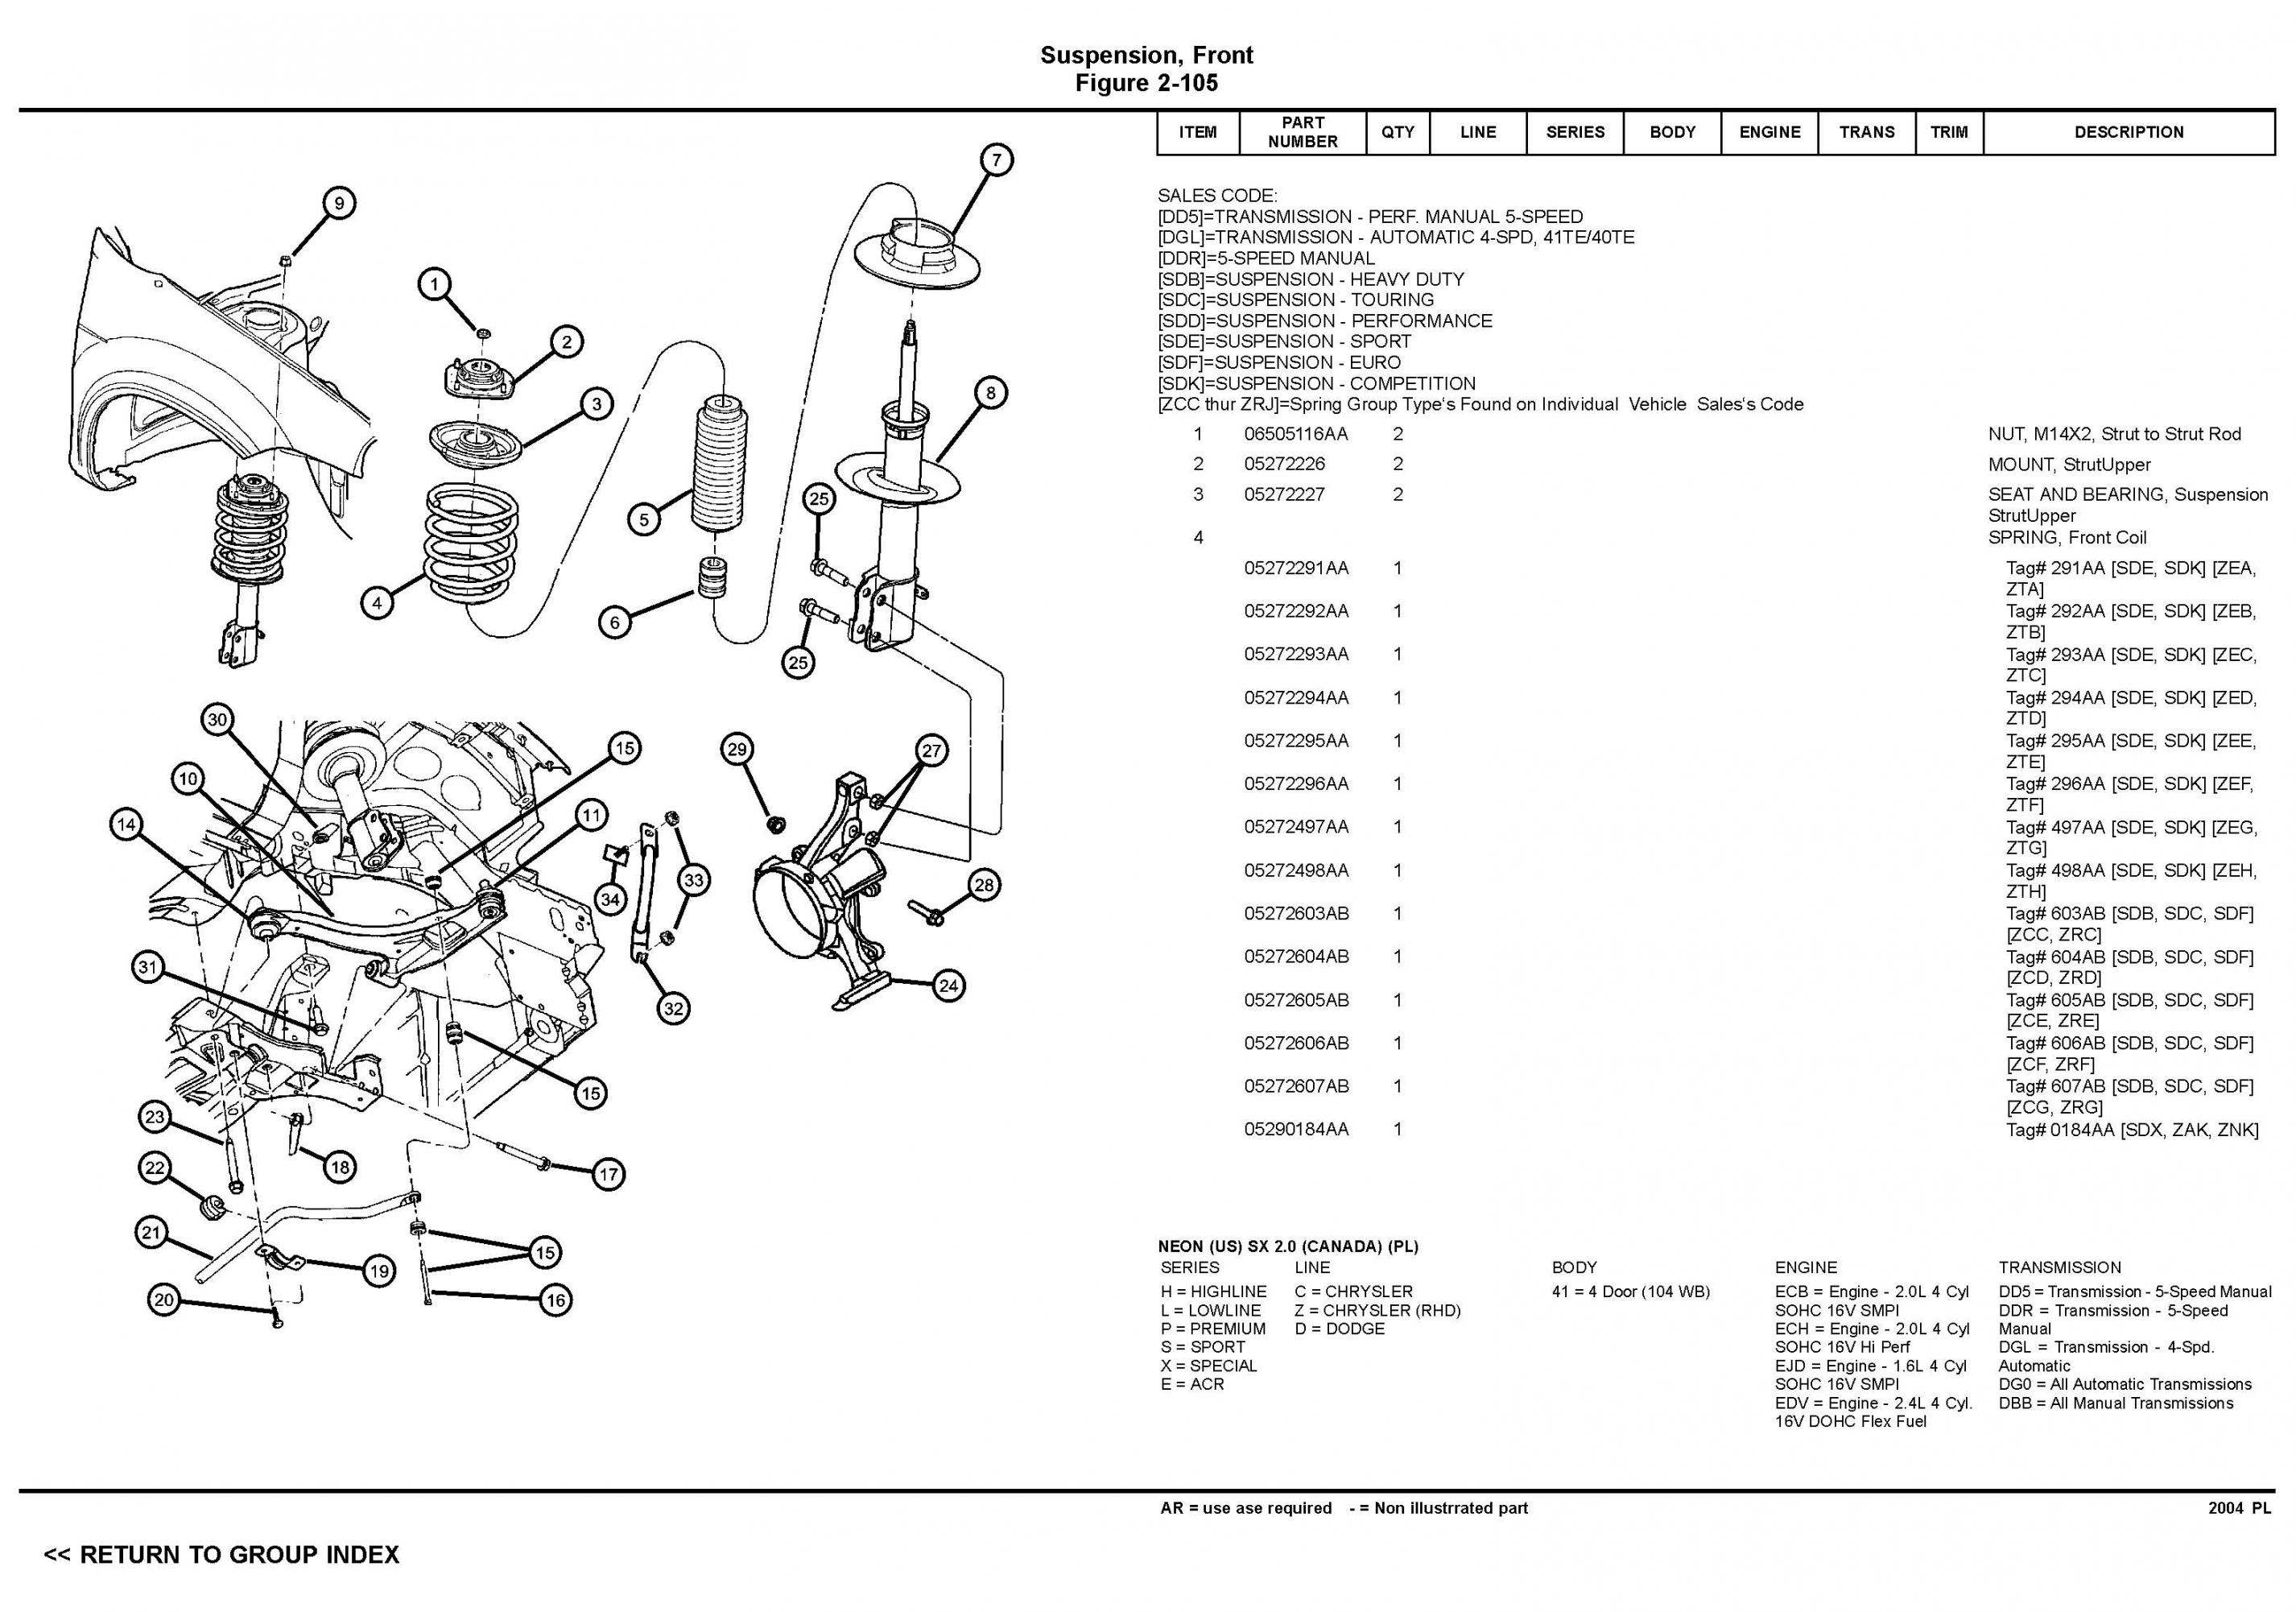 2006 Toyota Corolla Ecm Location. Toyota. Wiring Diagram